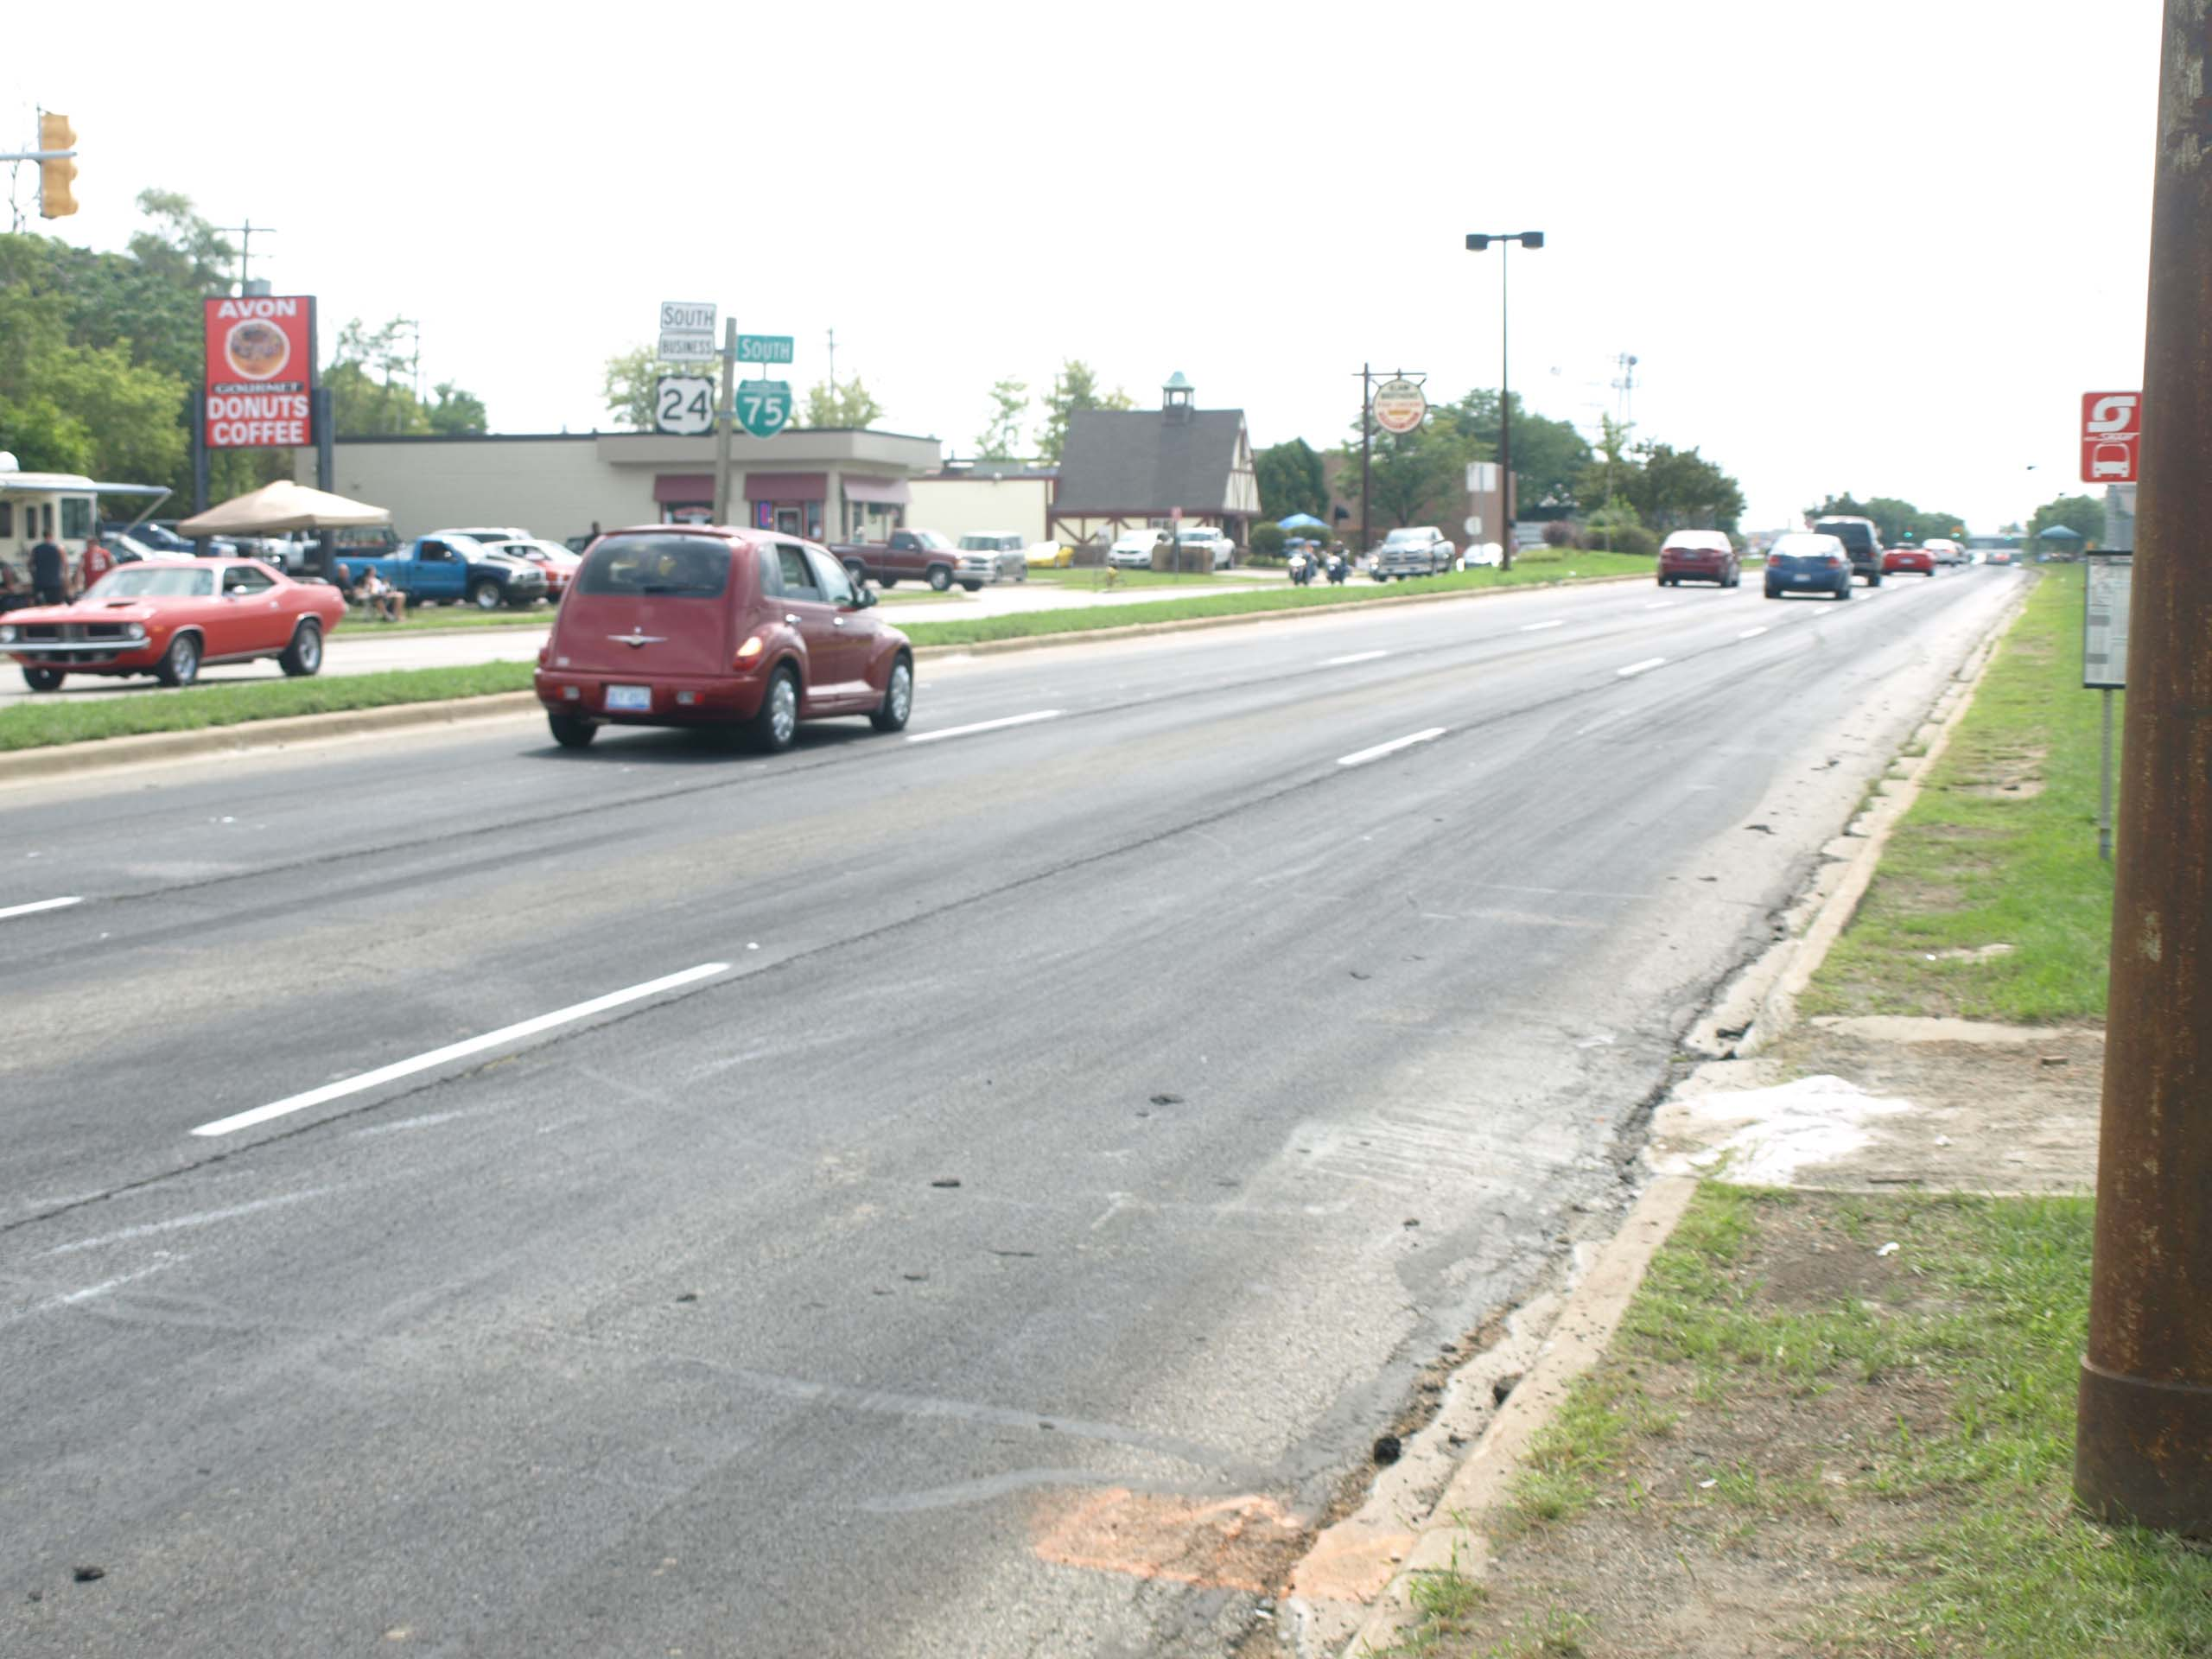 Amazingly, by Saturday morning, all signs of the impromptu Roadkill Nights drag strip were removed and normal traffic returned to Woodward Avenue. Plans for 2017 are unknown. It is possible this was a once in a lifetime event. We're glad to have witnessed it!